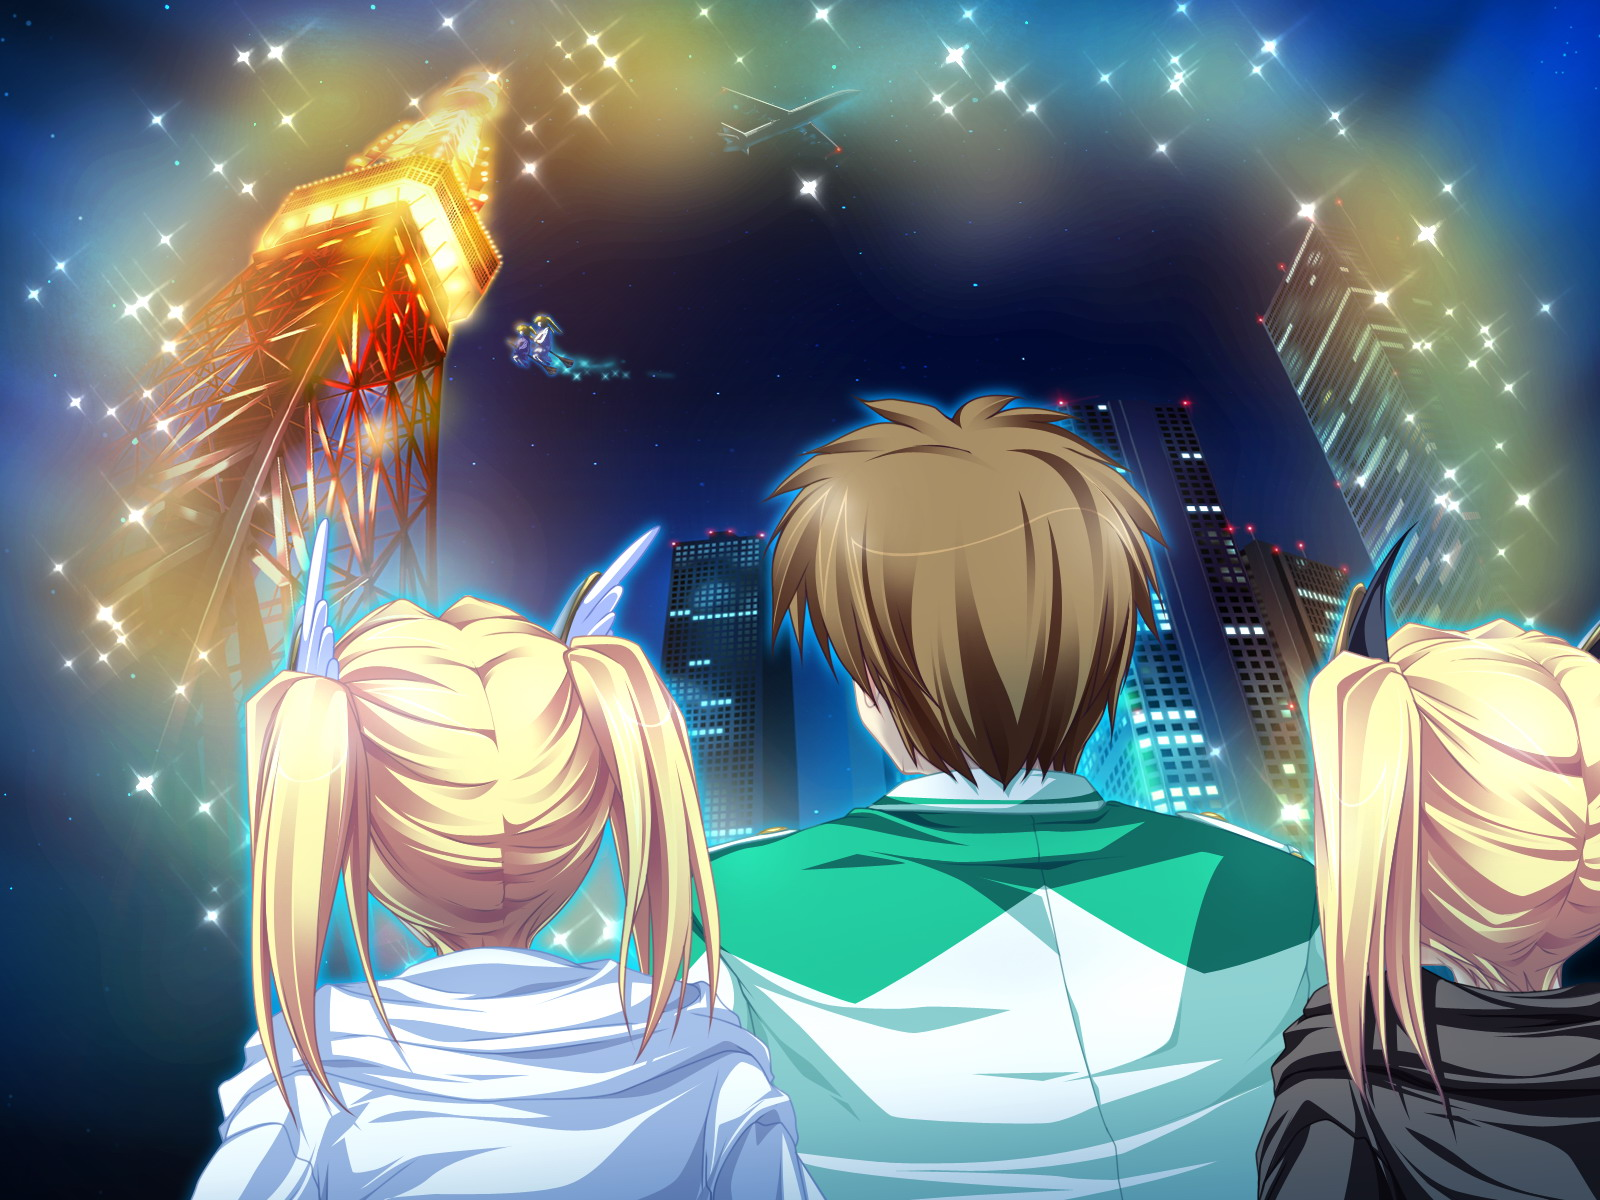 aircraft blonde_hair building city game_cg group magic magus_tale night nina_geminis rena_geminis school_uniform tenmaso twins twintails whirlpool witch